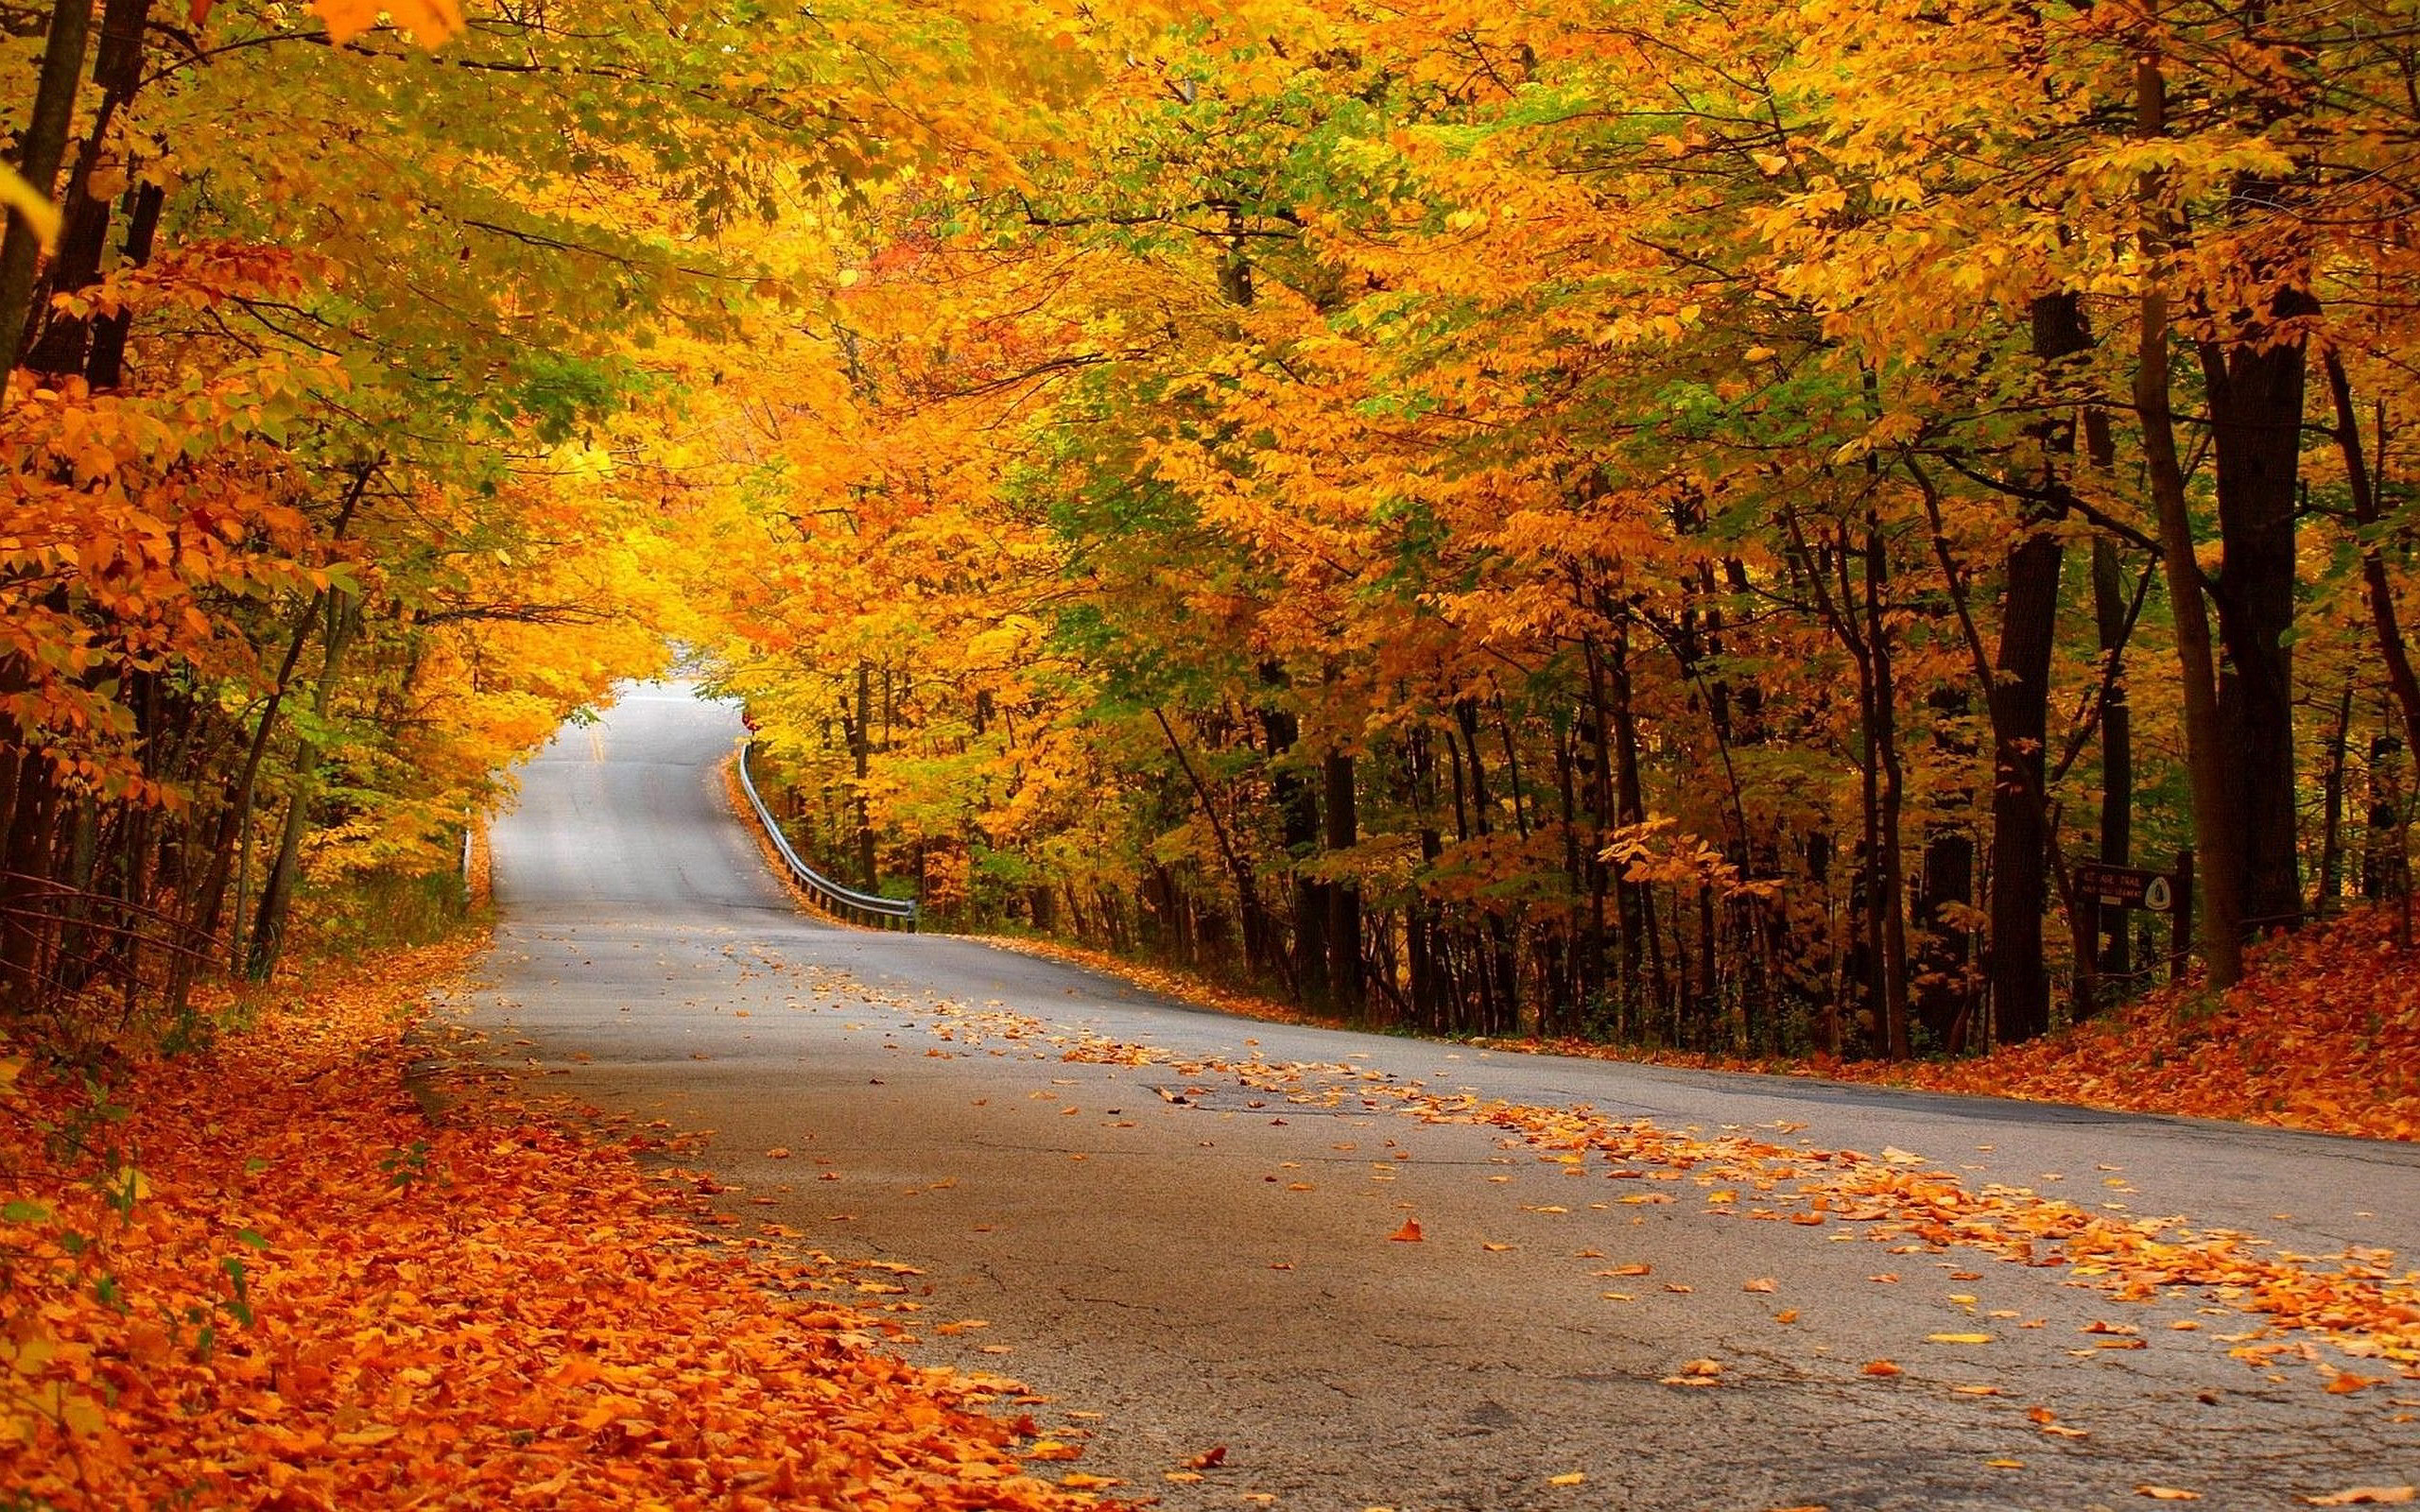 autumn nature download